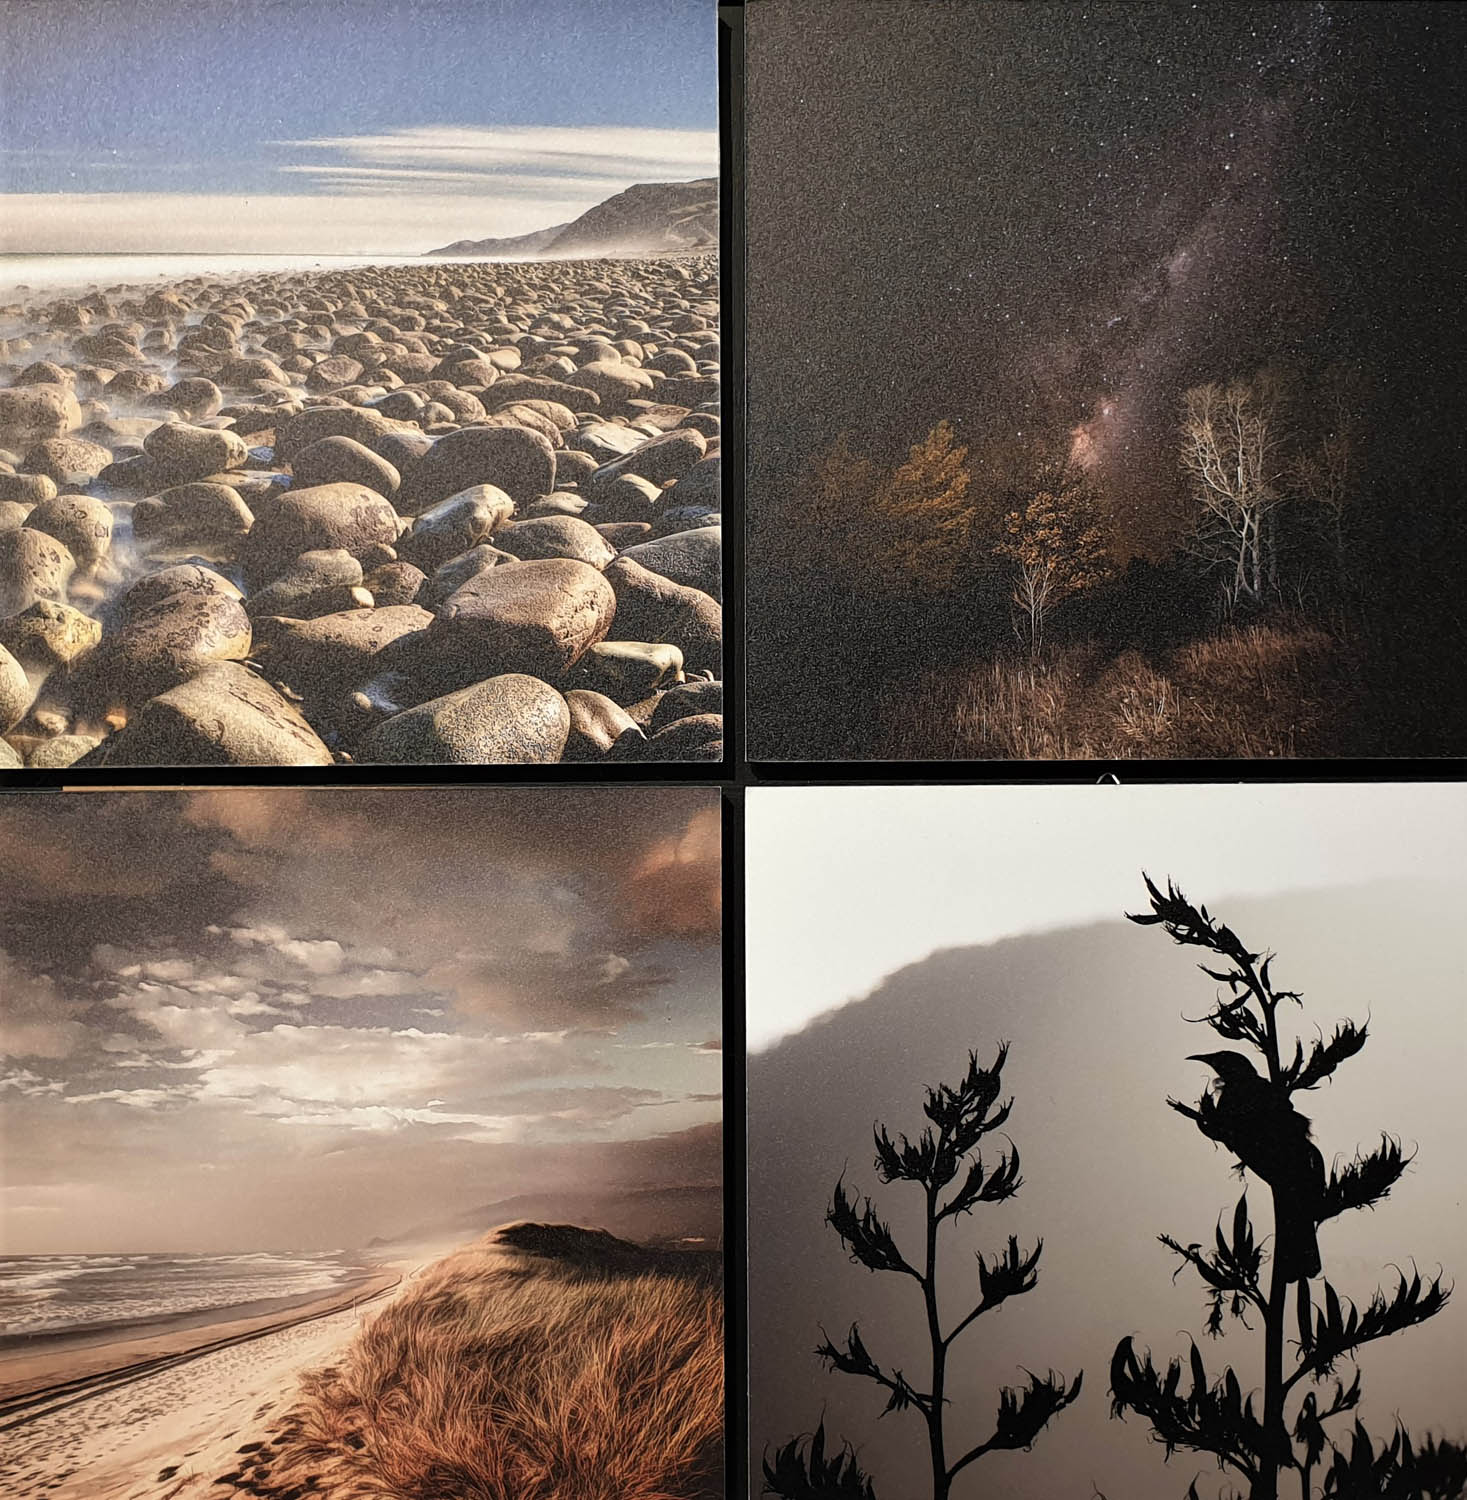 Exhibition of Fine Art  Photography by Sam Barrow at Windsor Gallery - Little Treasures